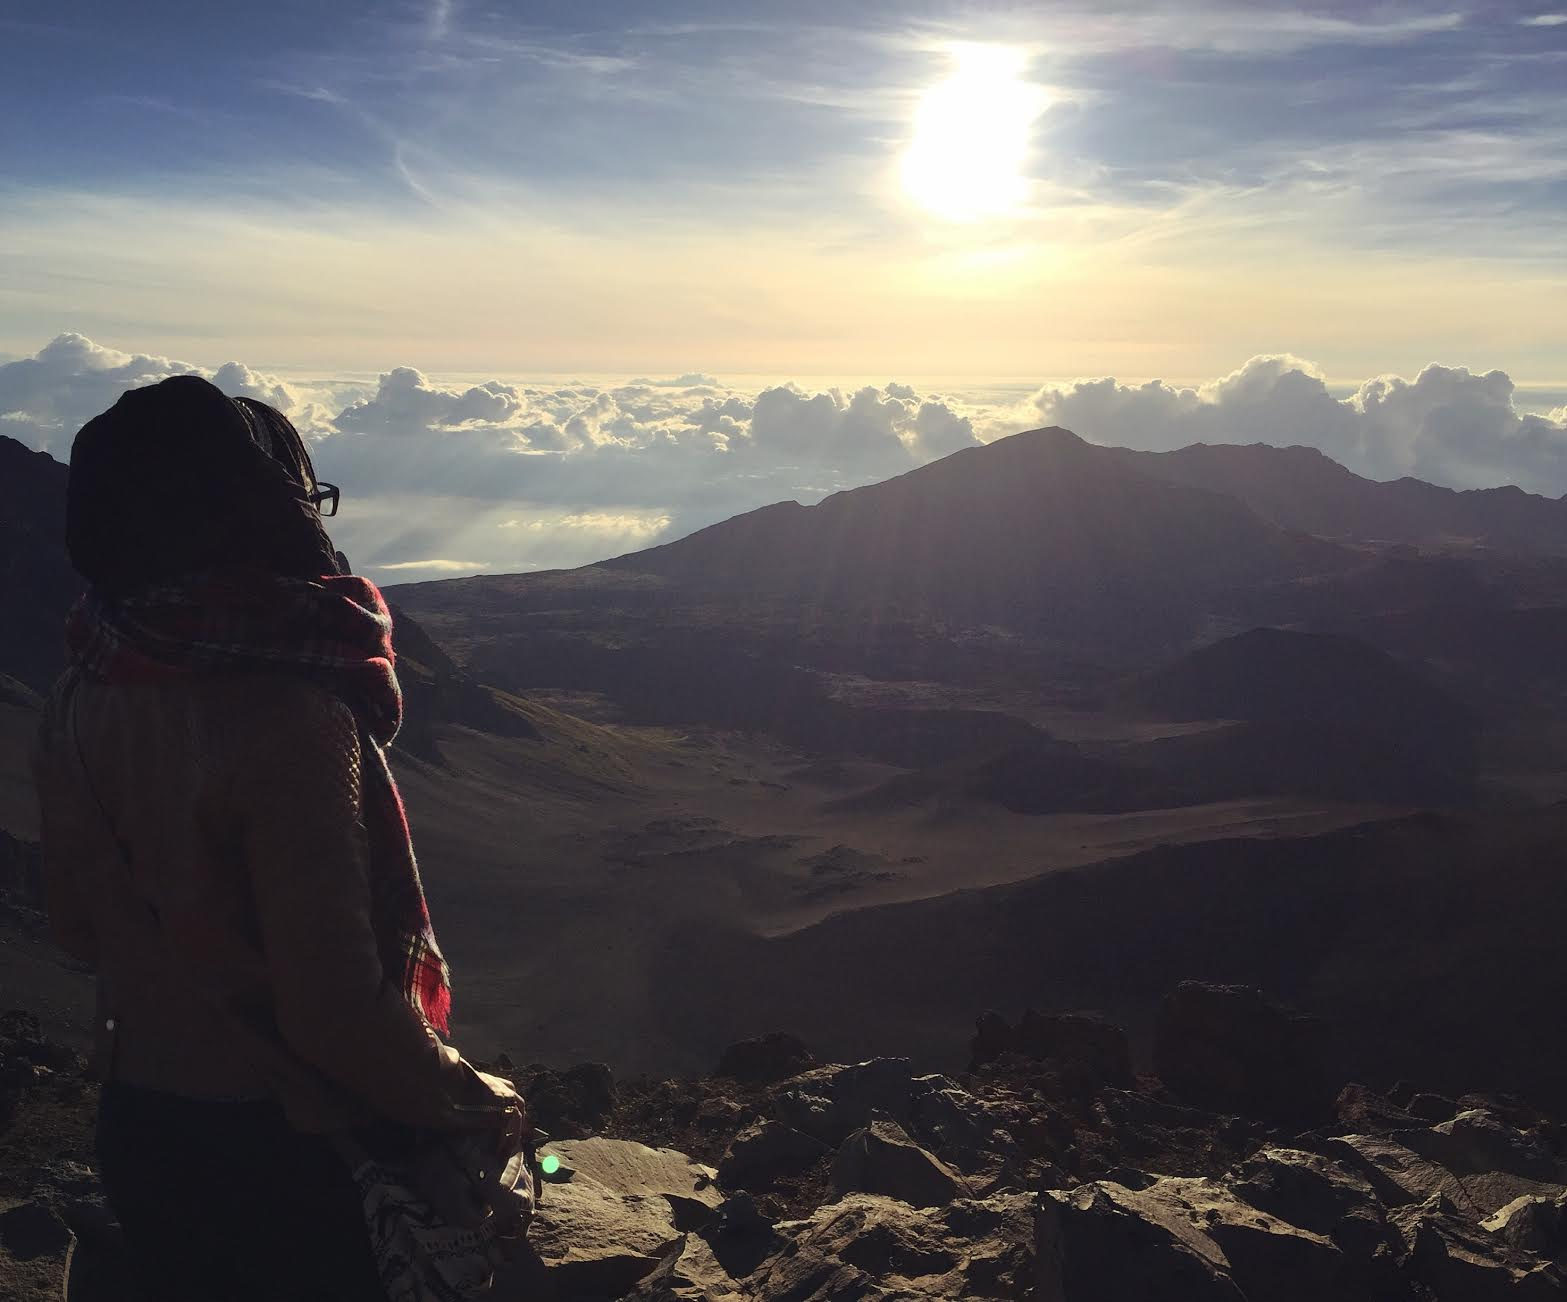 Muslim-travel-Maui-sunrise-Haleakala.jpg